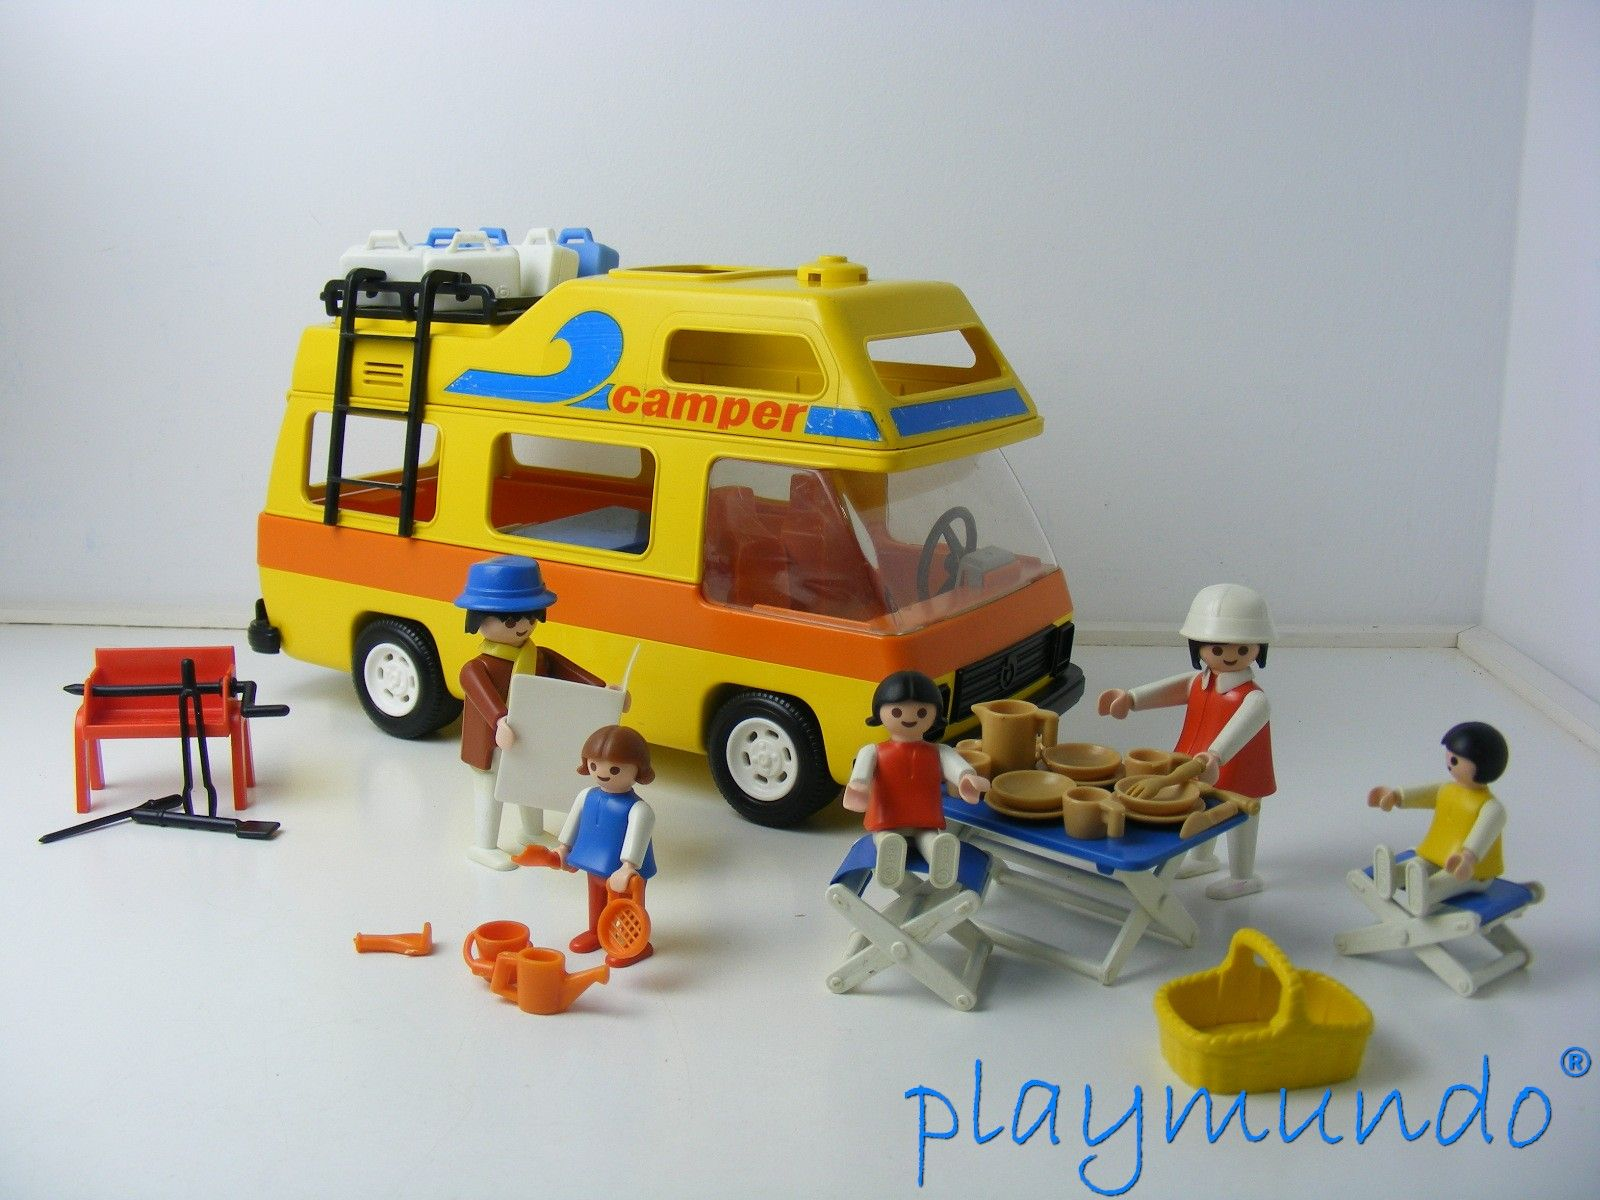 Pin By Anne On Playmobil Playmobil Toys Toy 2